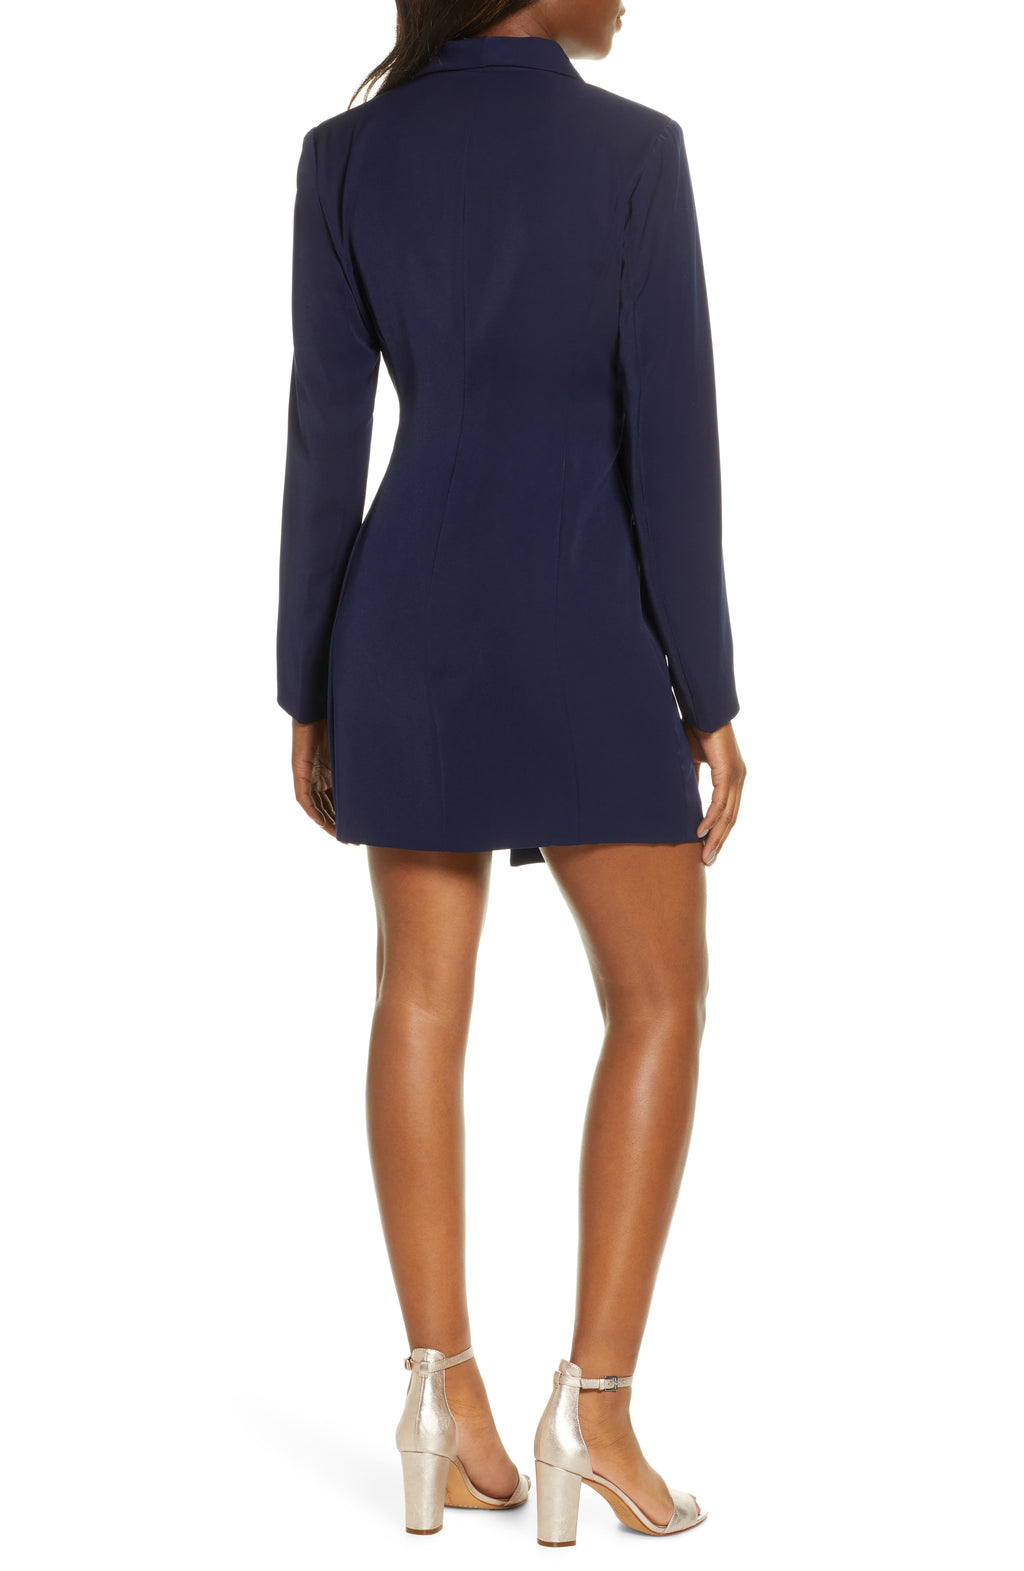 Ashtyn Jacket Dress in Navy